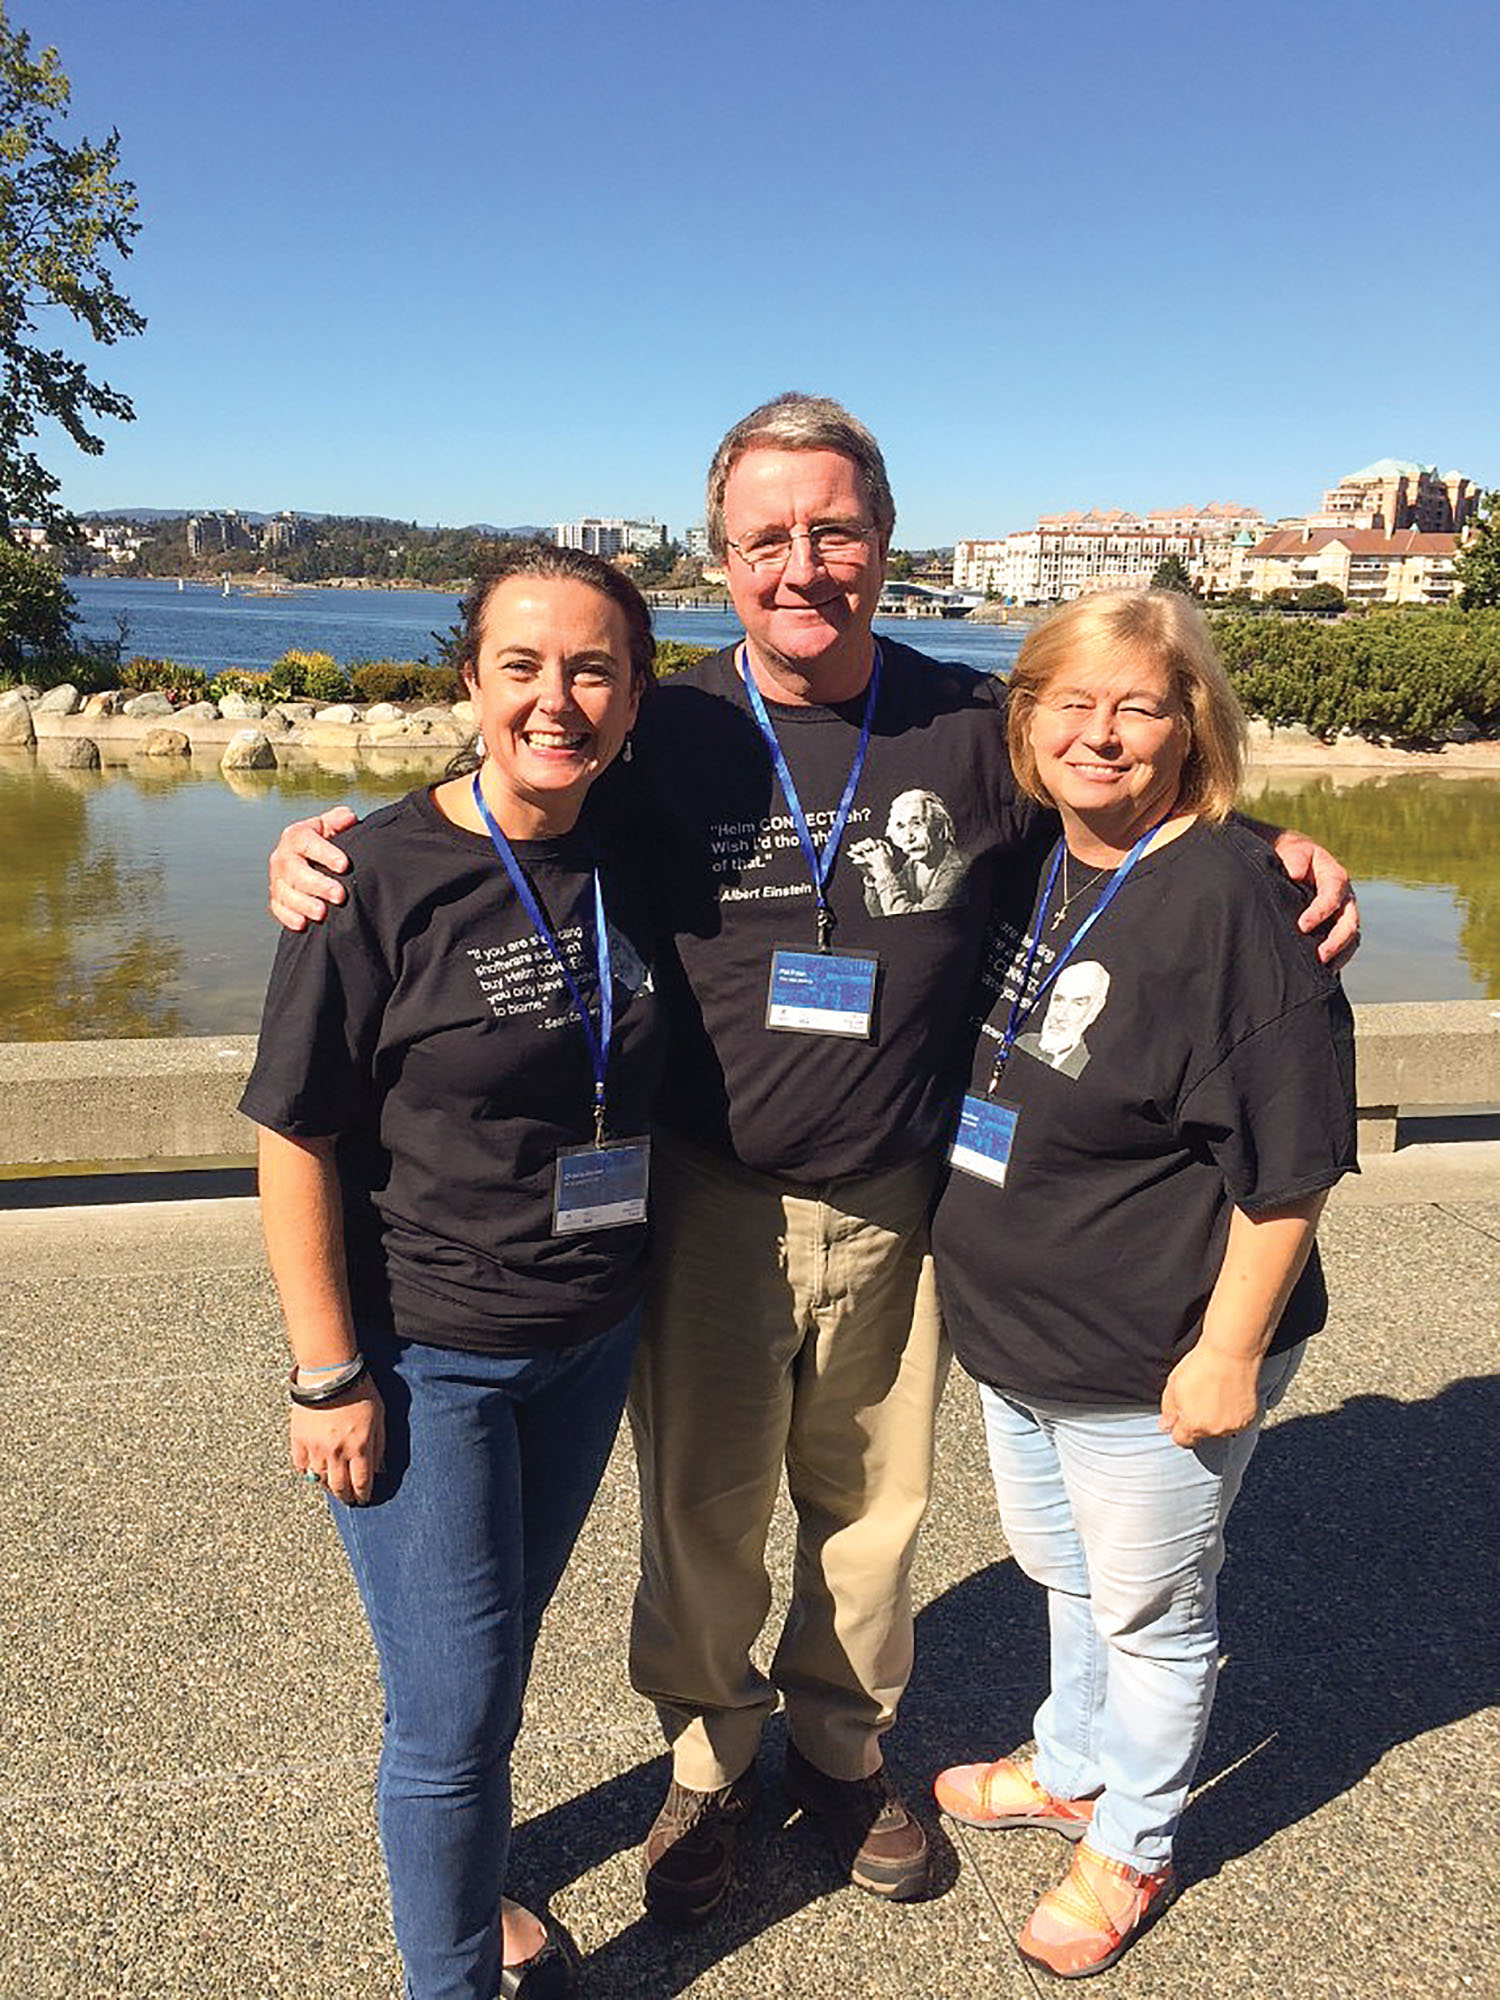 Chrystie Benson, left, with Helm Operations and Pat and Sandy Folan with Tug & Barge Solutions (TBS) at Helm Conference 2018.